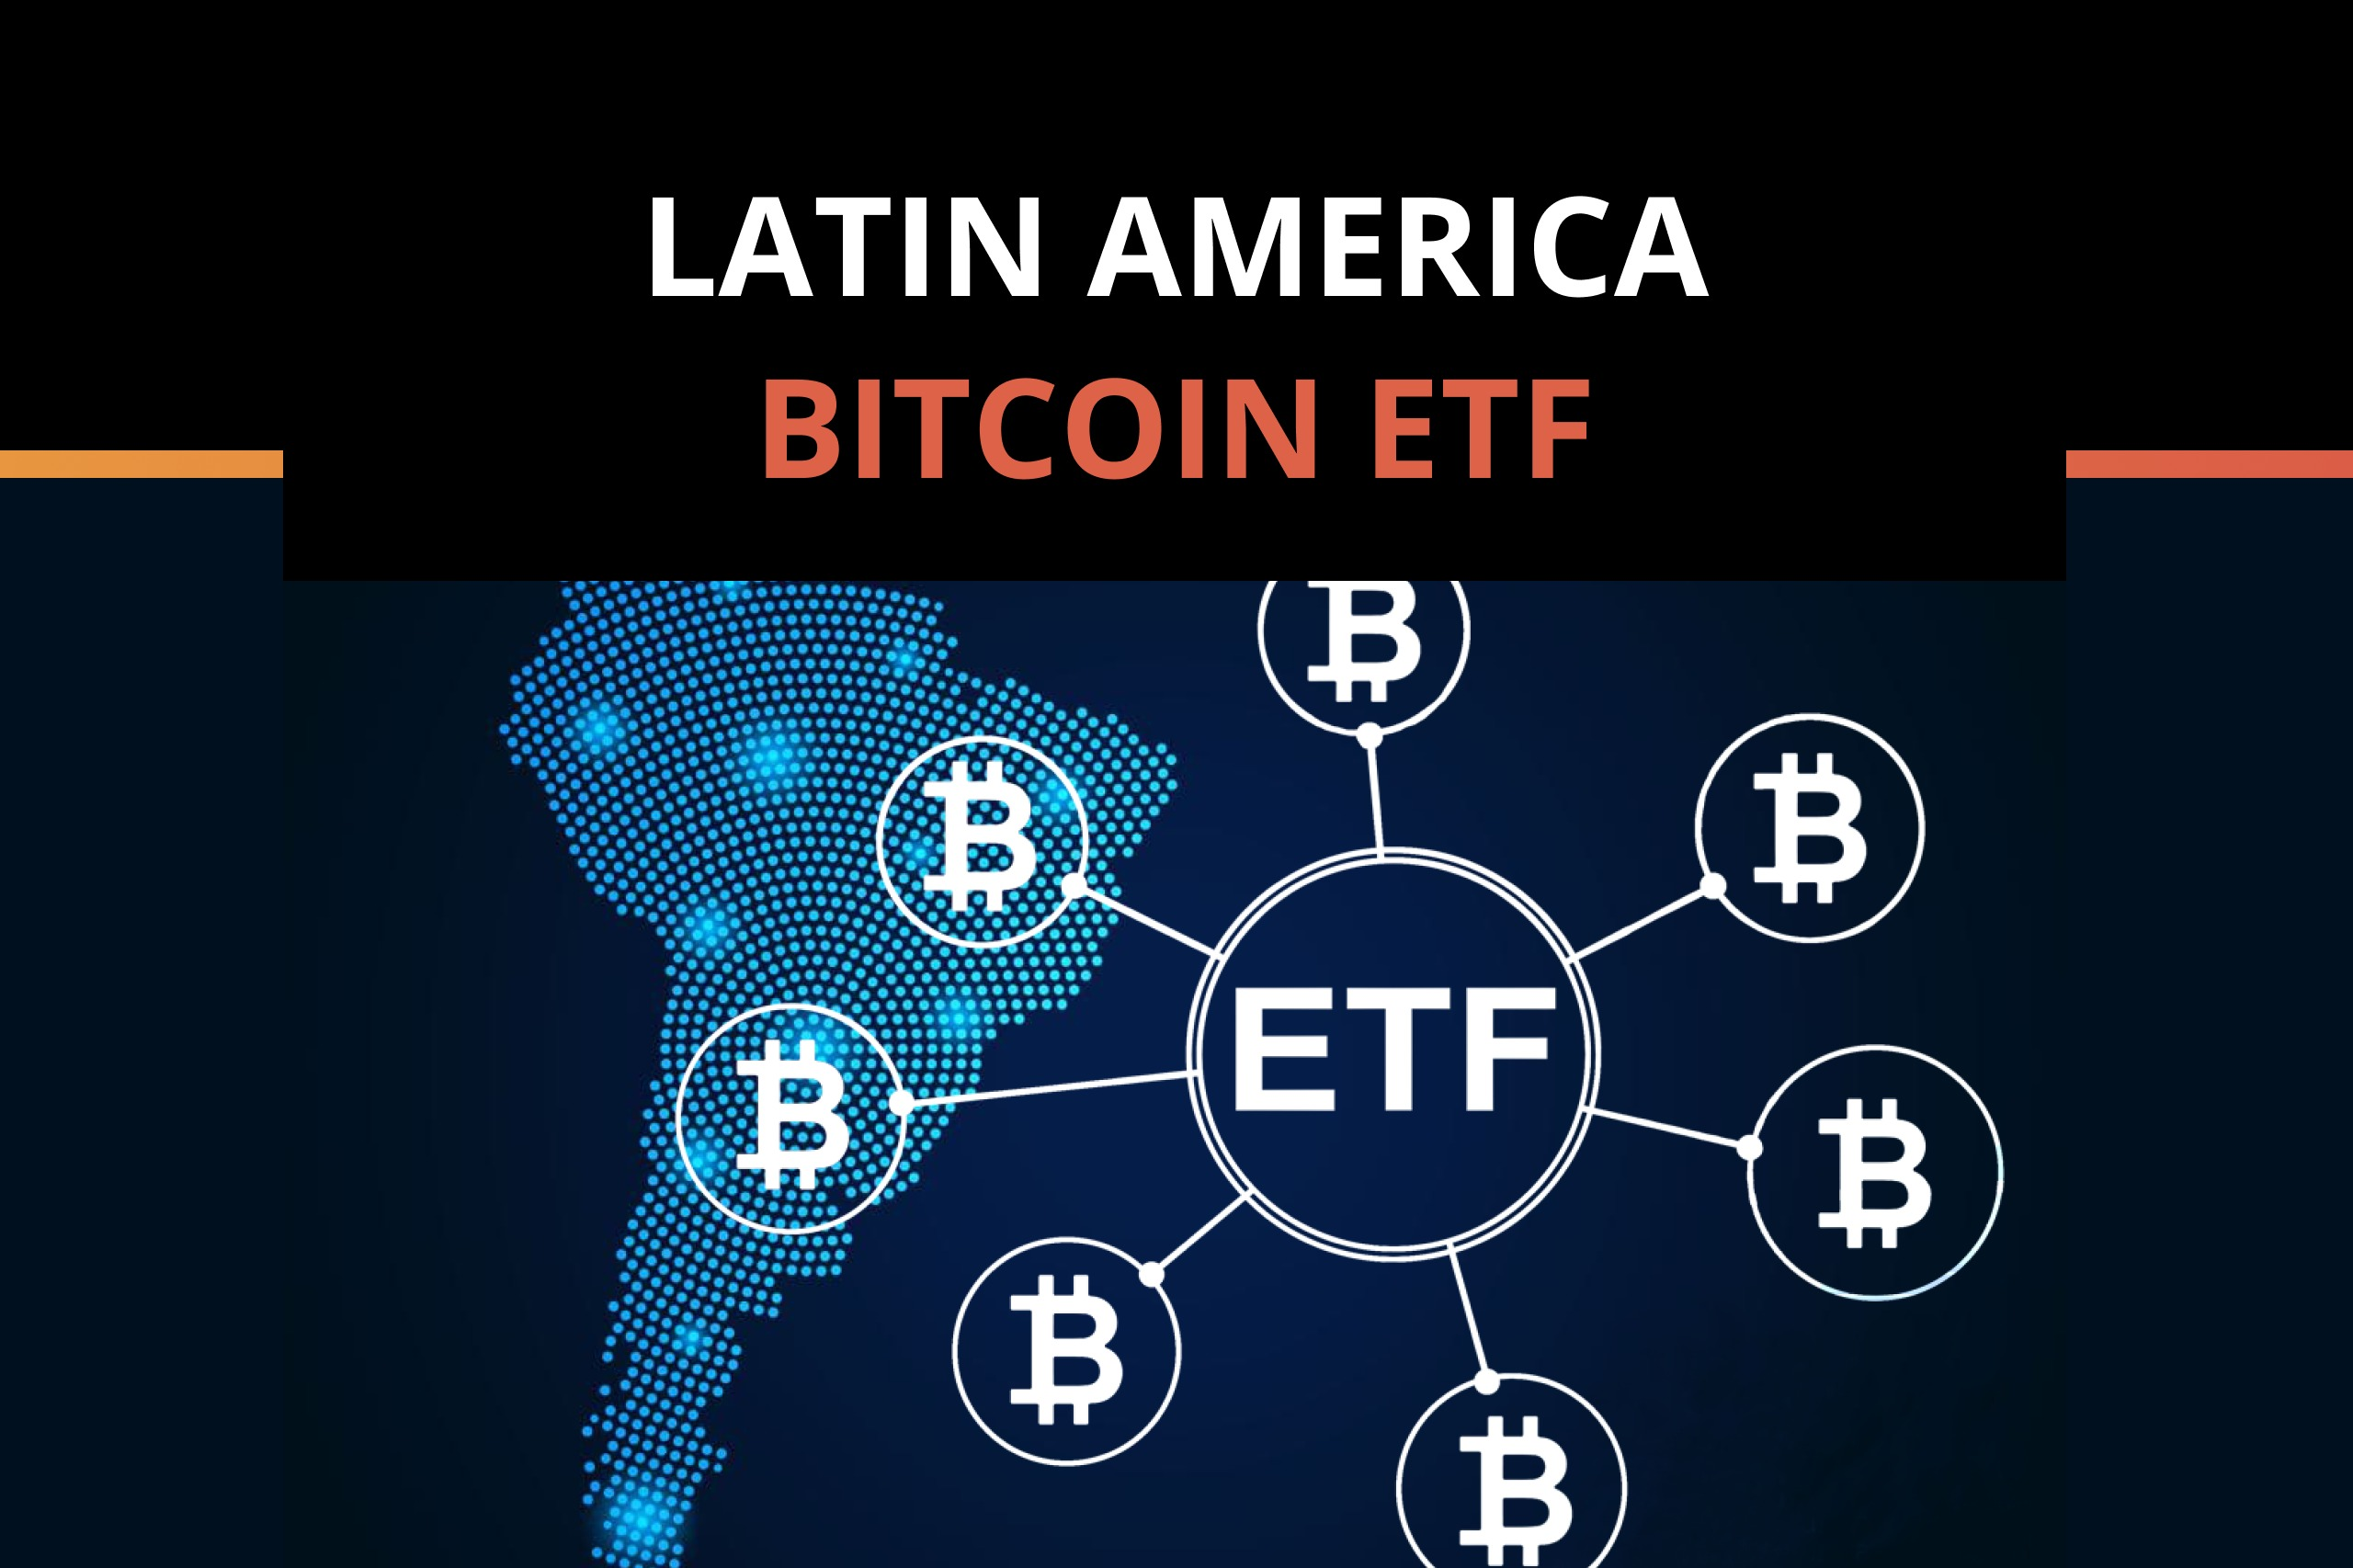 First Bitcoin ETF Approved in Brazil